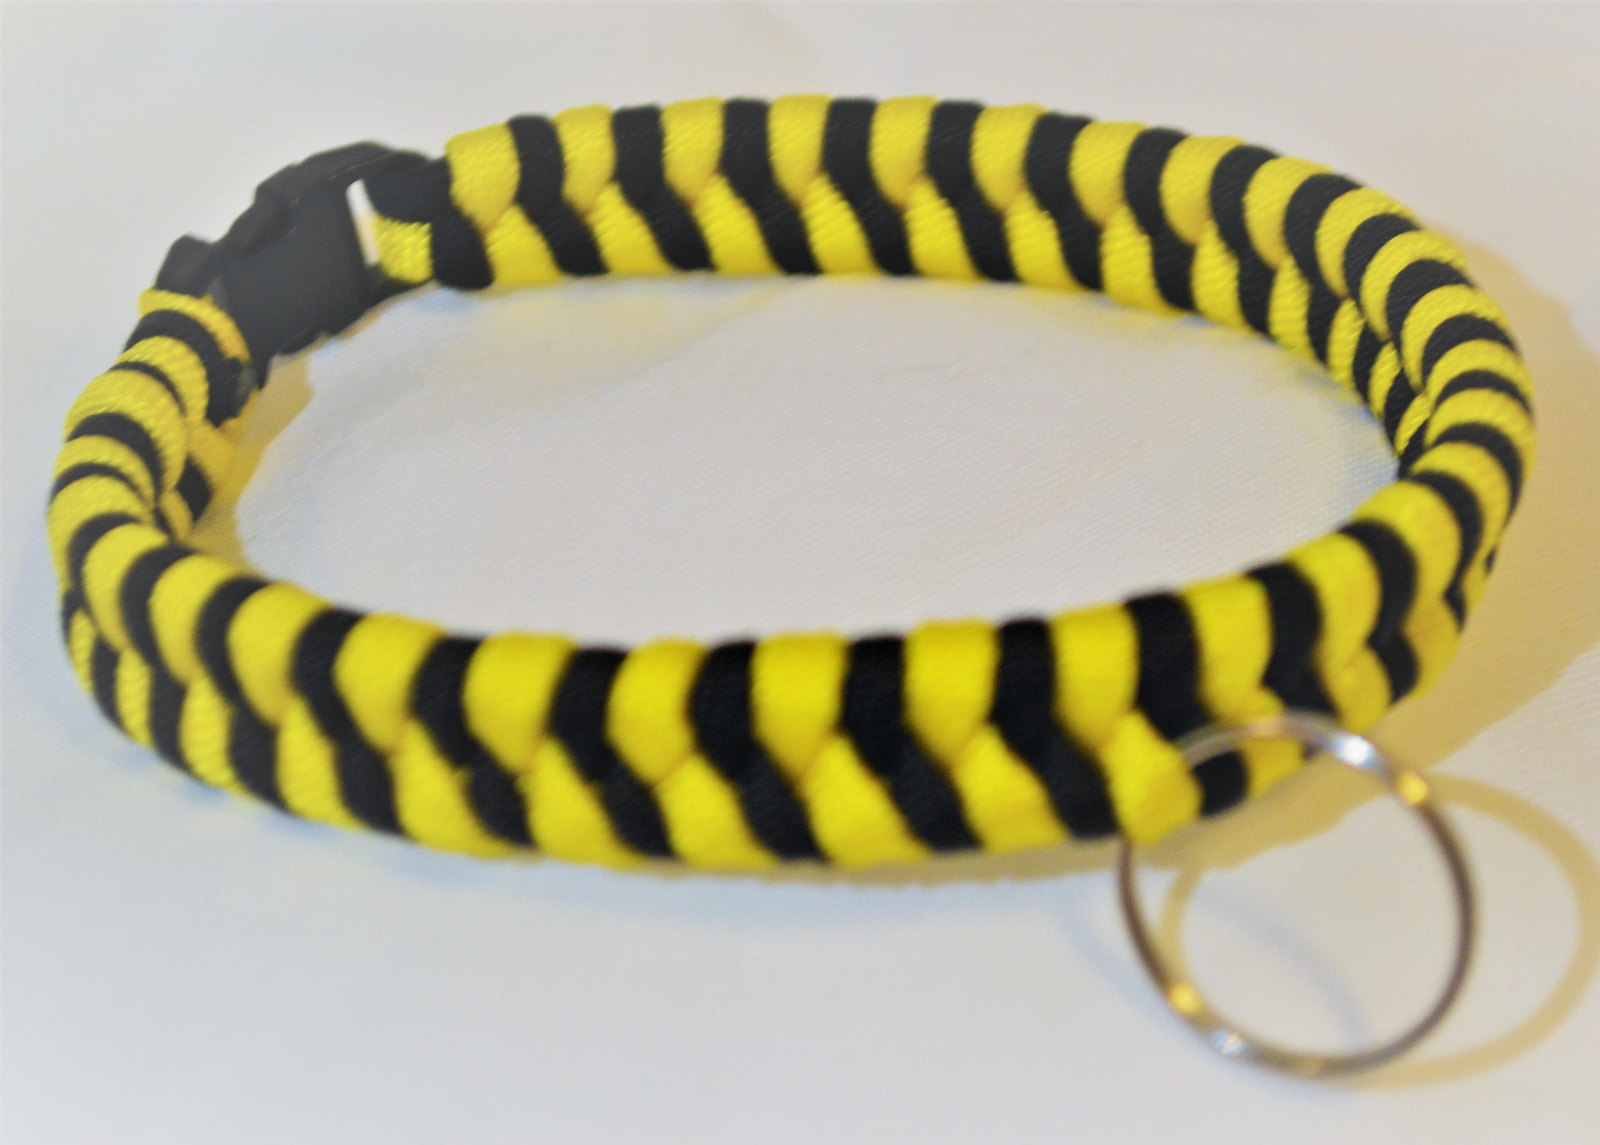 Primary image for Paracord 550 Dog Collar Yellow and Black Fish Tail Design Black Quick Release Bu